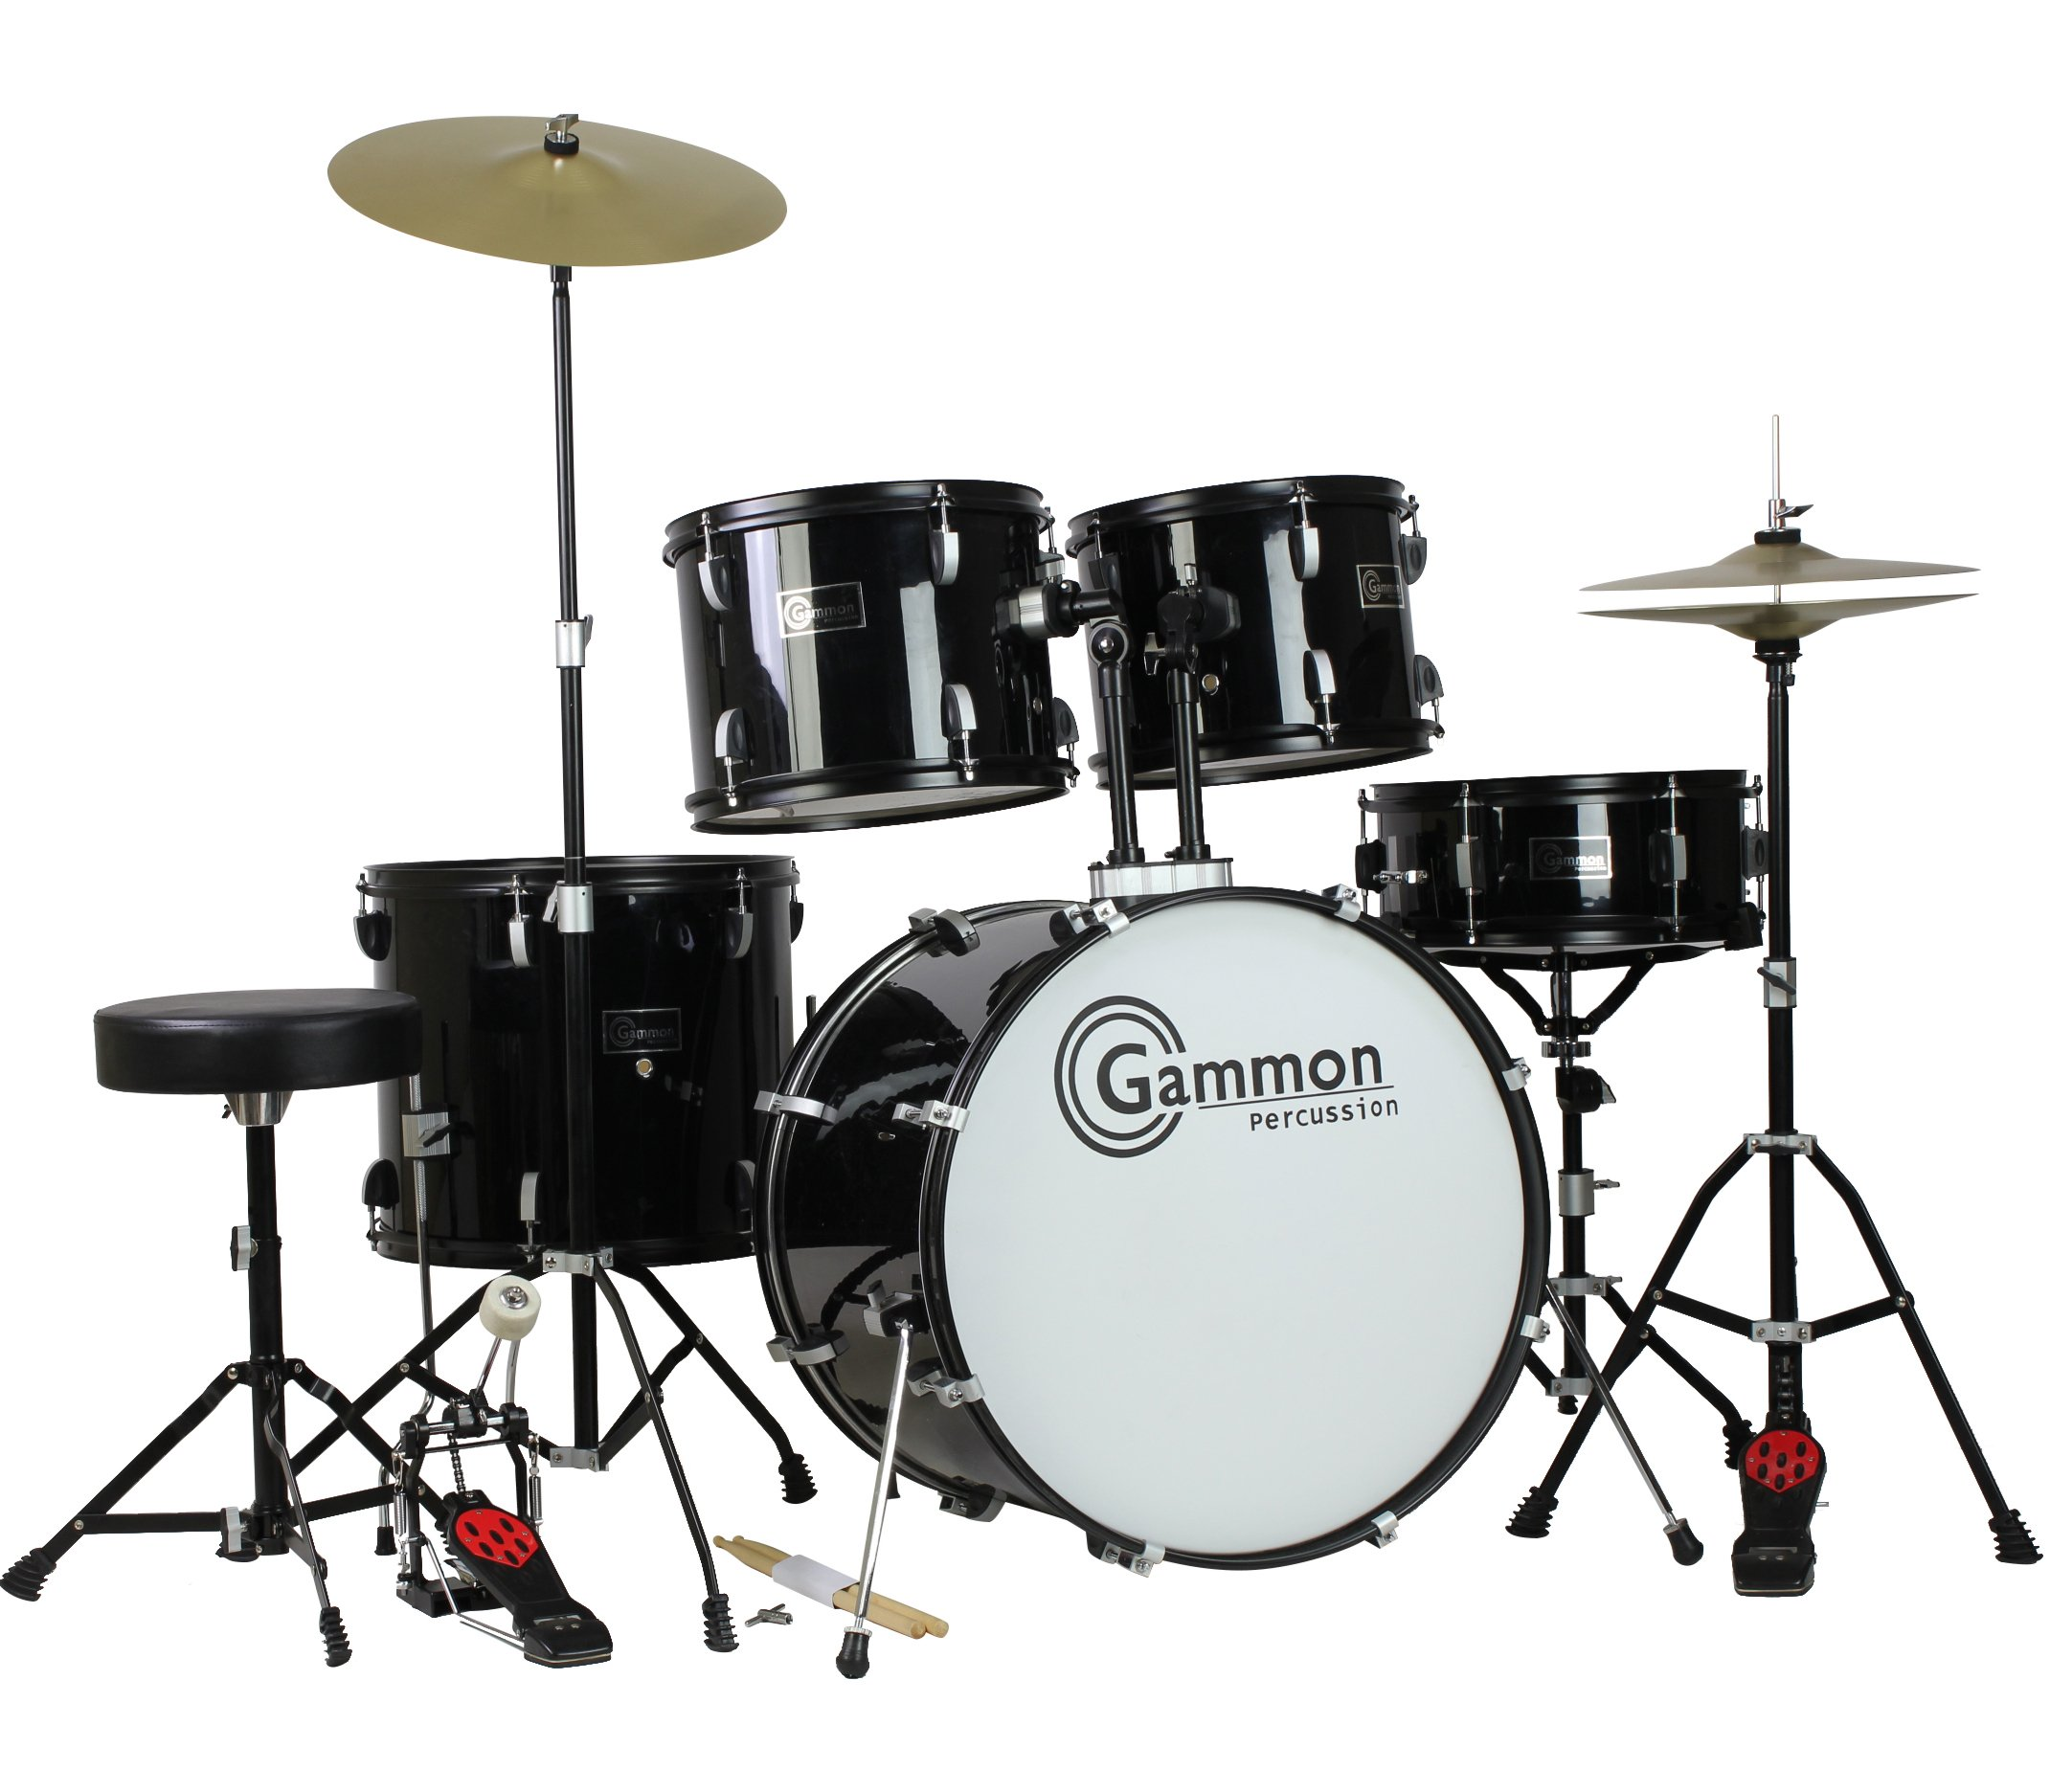 Gammon Percussion Full Size Complete Adult 5 Piece Drum Set with Cymbals Stands Stool and Sticks, Black by Gammon Percussion (Image #1)